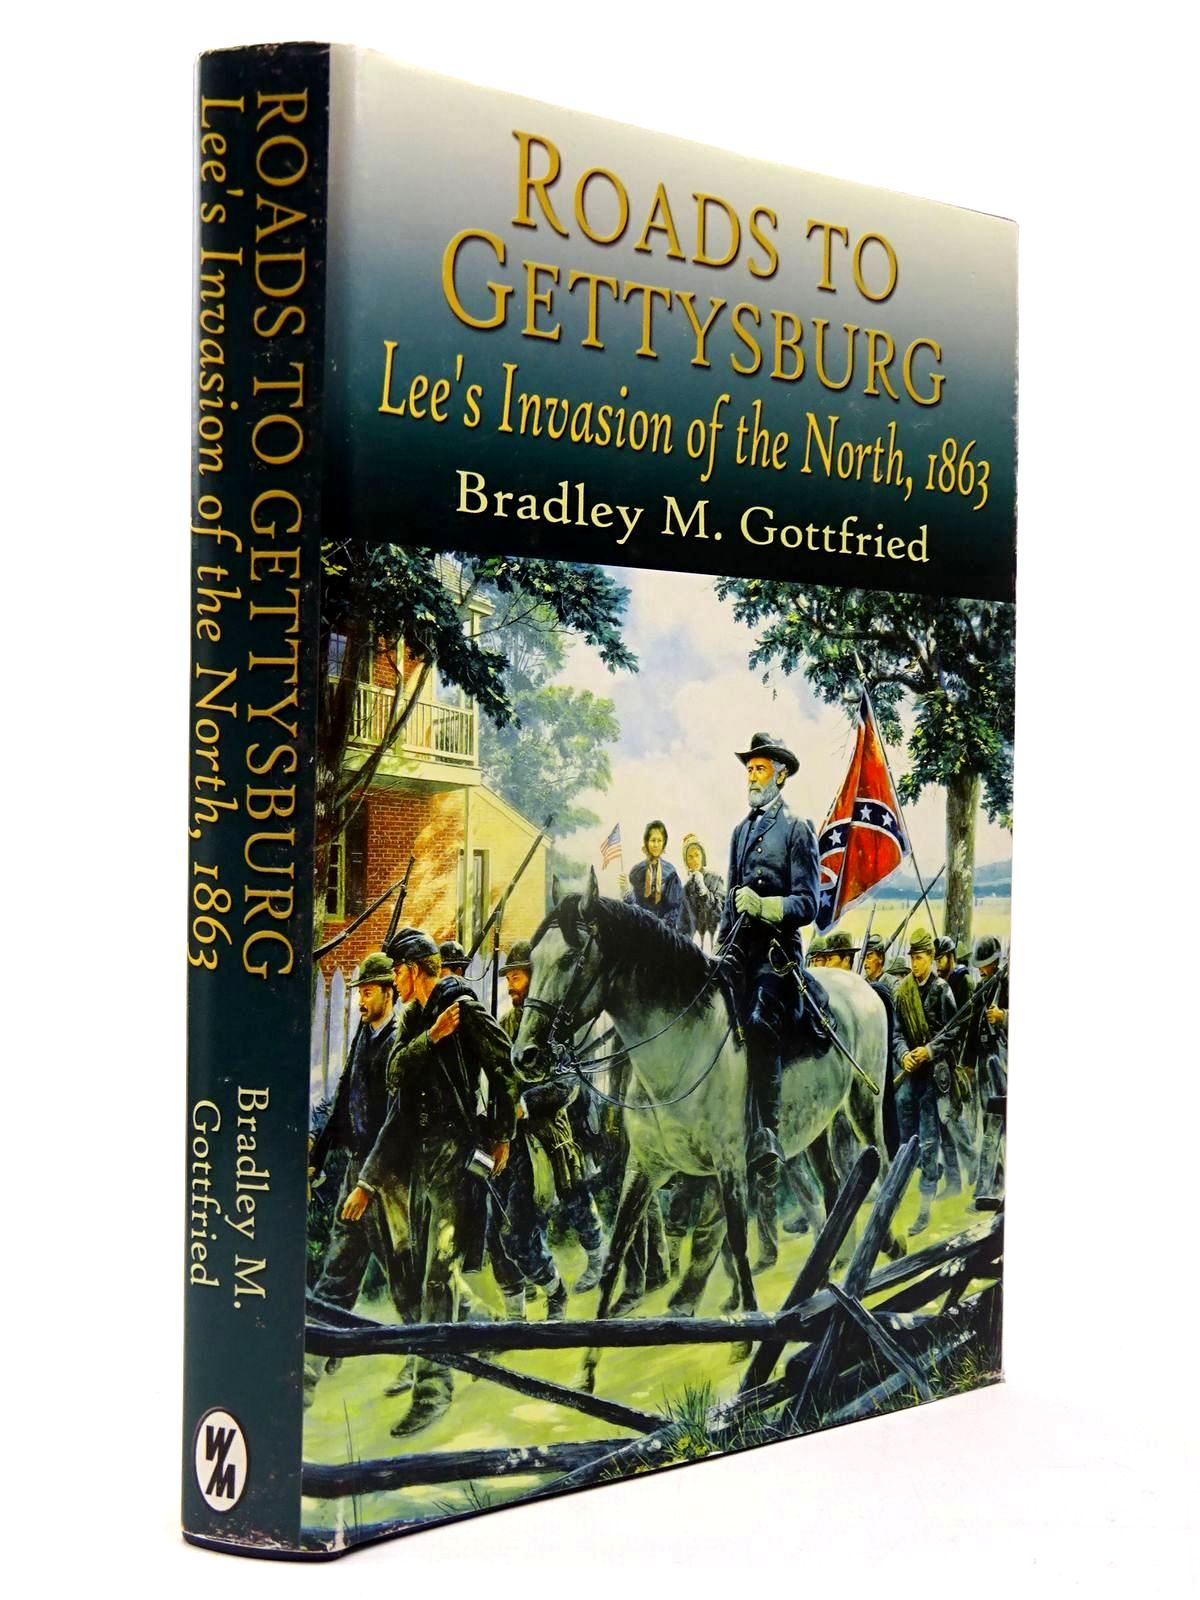 Photo of ROADS TO GETTYSBURG LEE'S INVASION OF THE NORTH, 1863 written by Gottfried, Bradley M. published by White Mane Books (STOCK CODE: 2130124)  for sale by Stella & Rose's Books